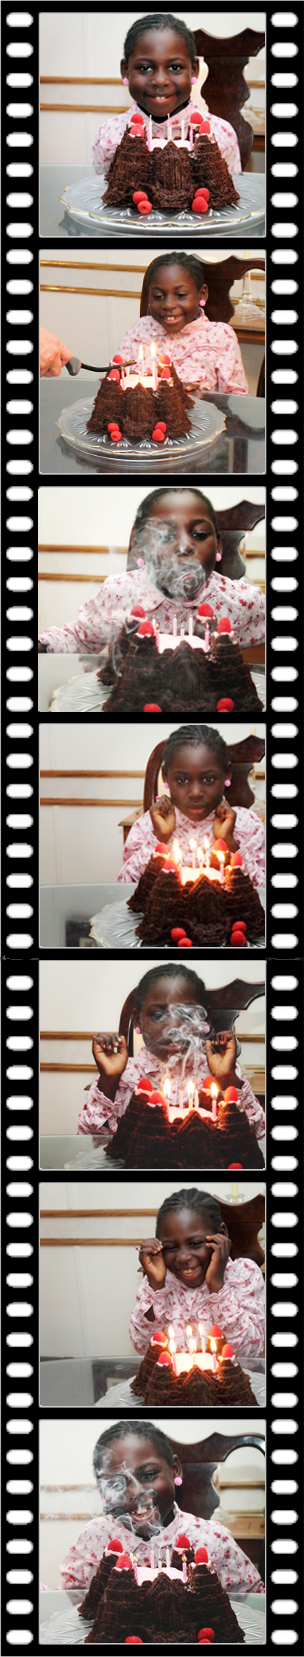 Kiffanie's reaction to trick candles on her cake